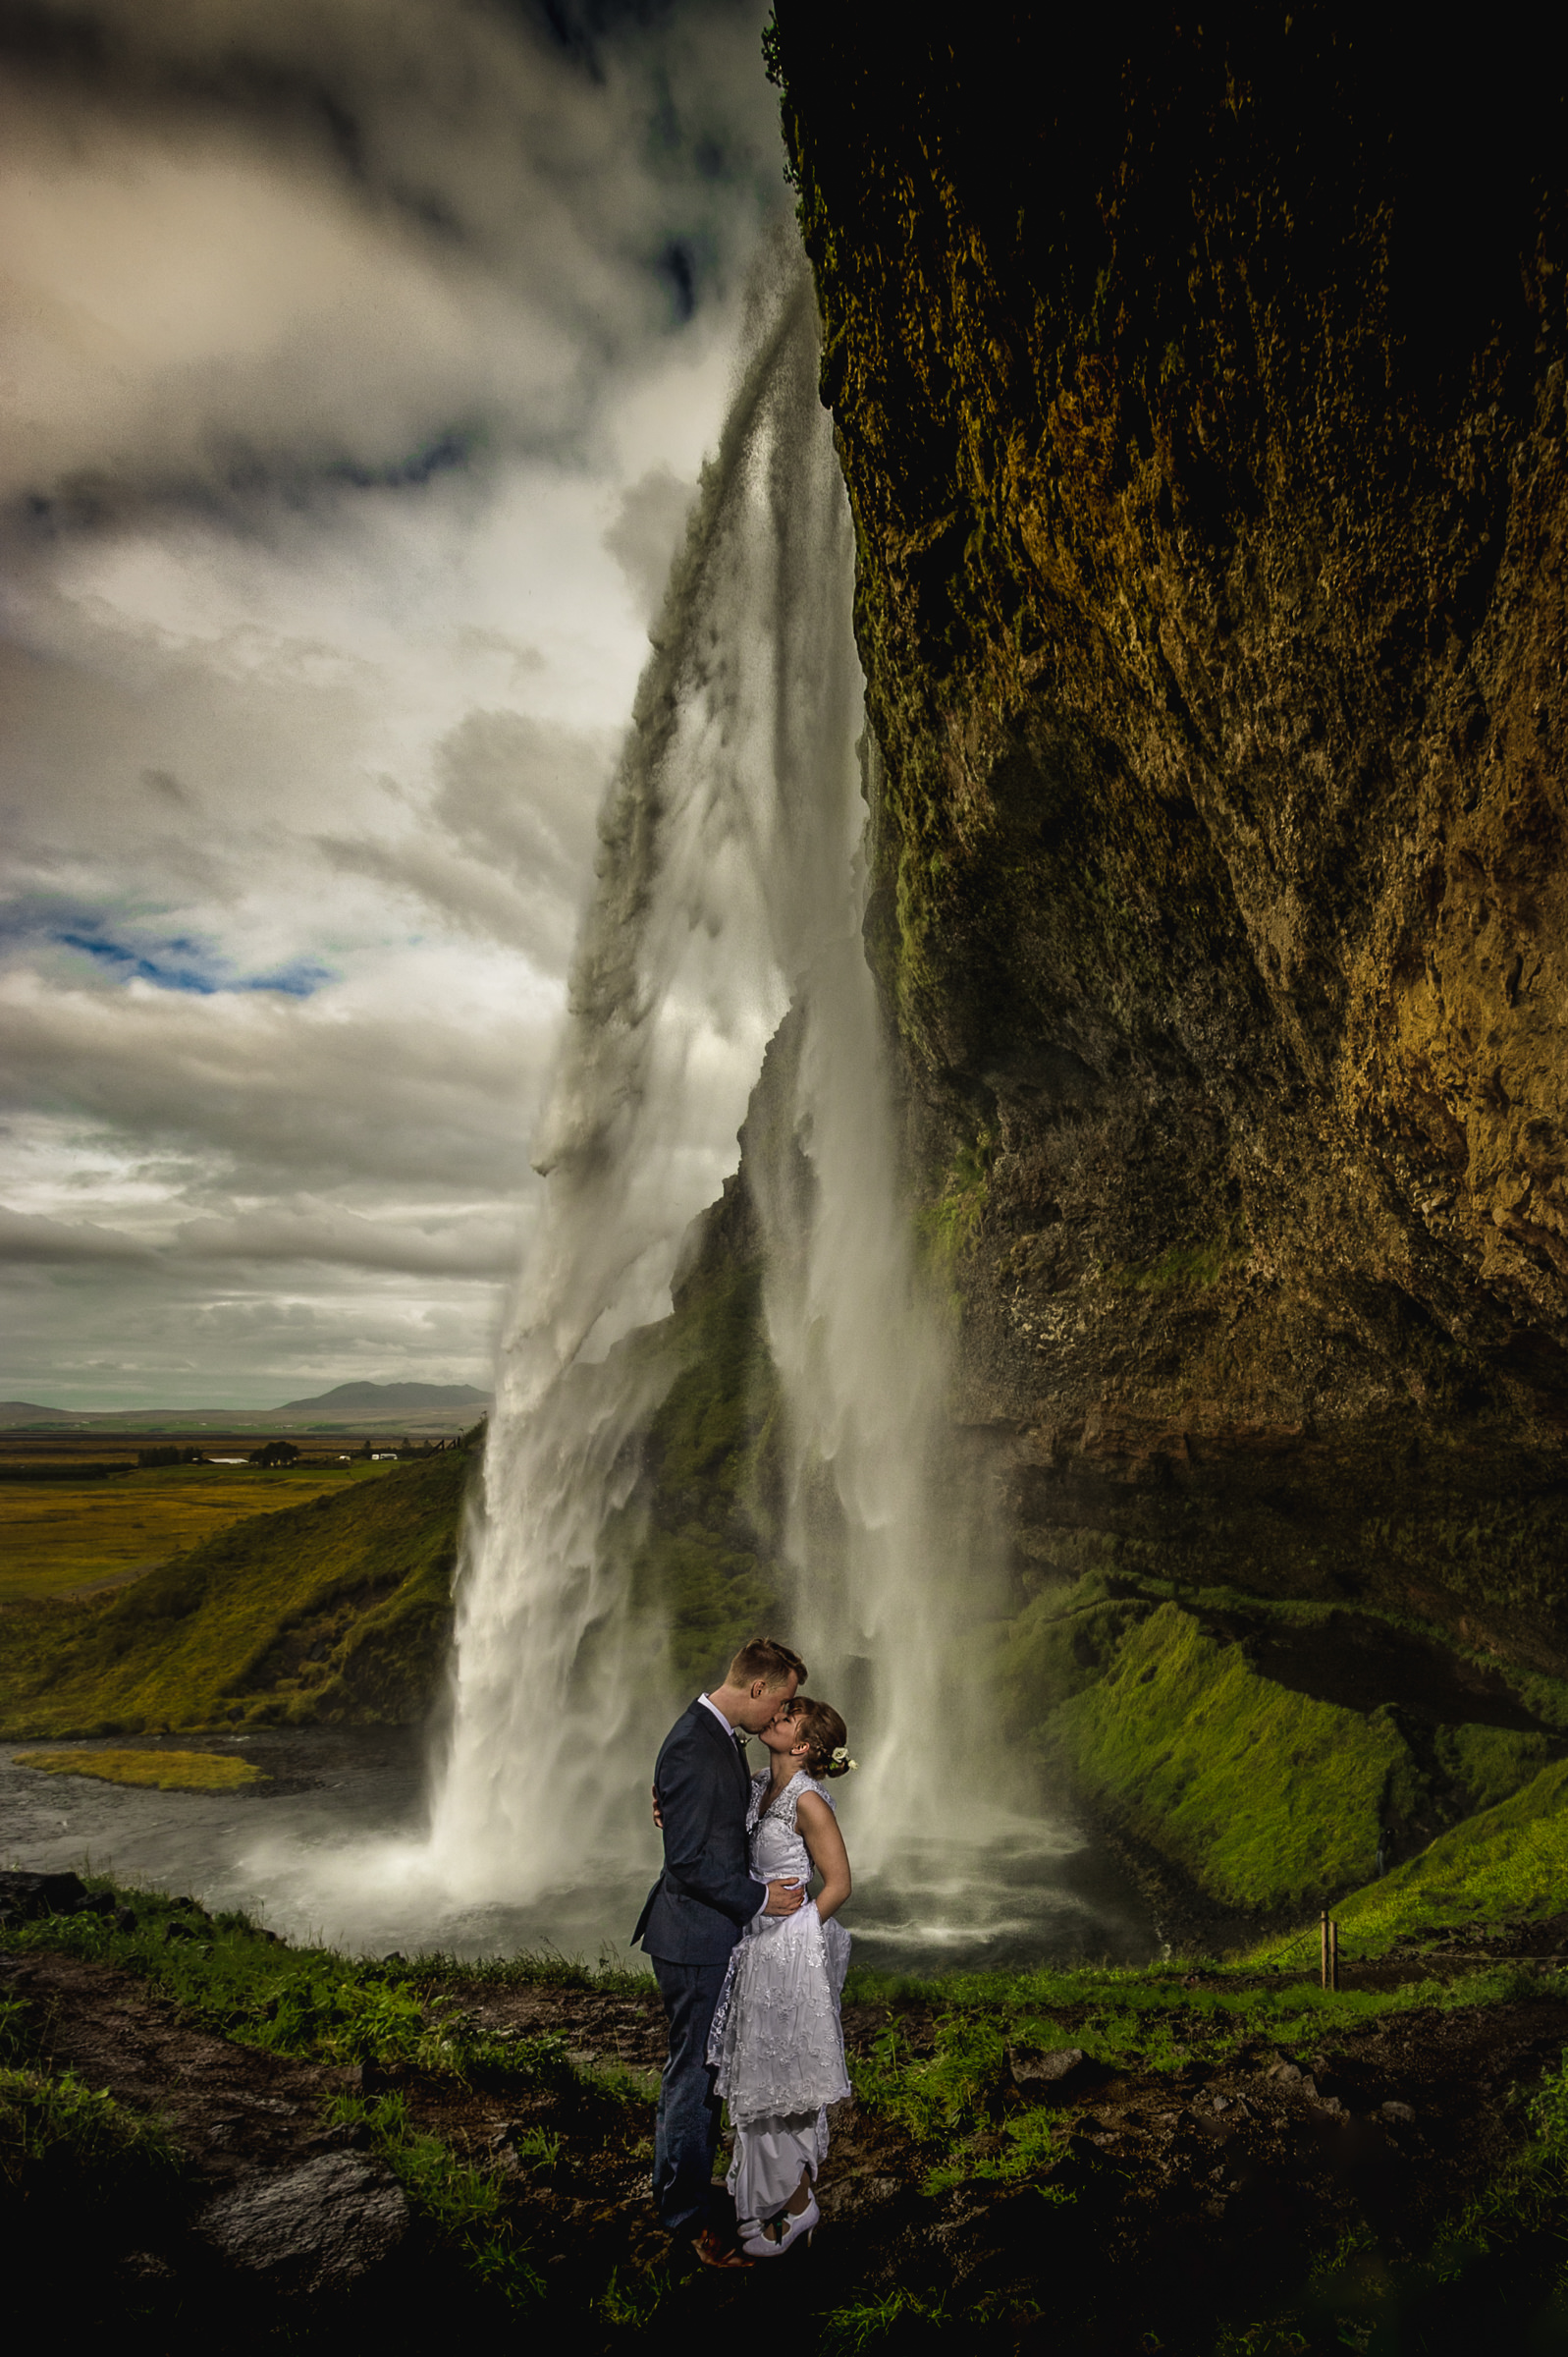 Landscape couple portrait under waterfall against dramatic sky - photo by Viridian Images Photography